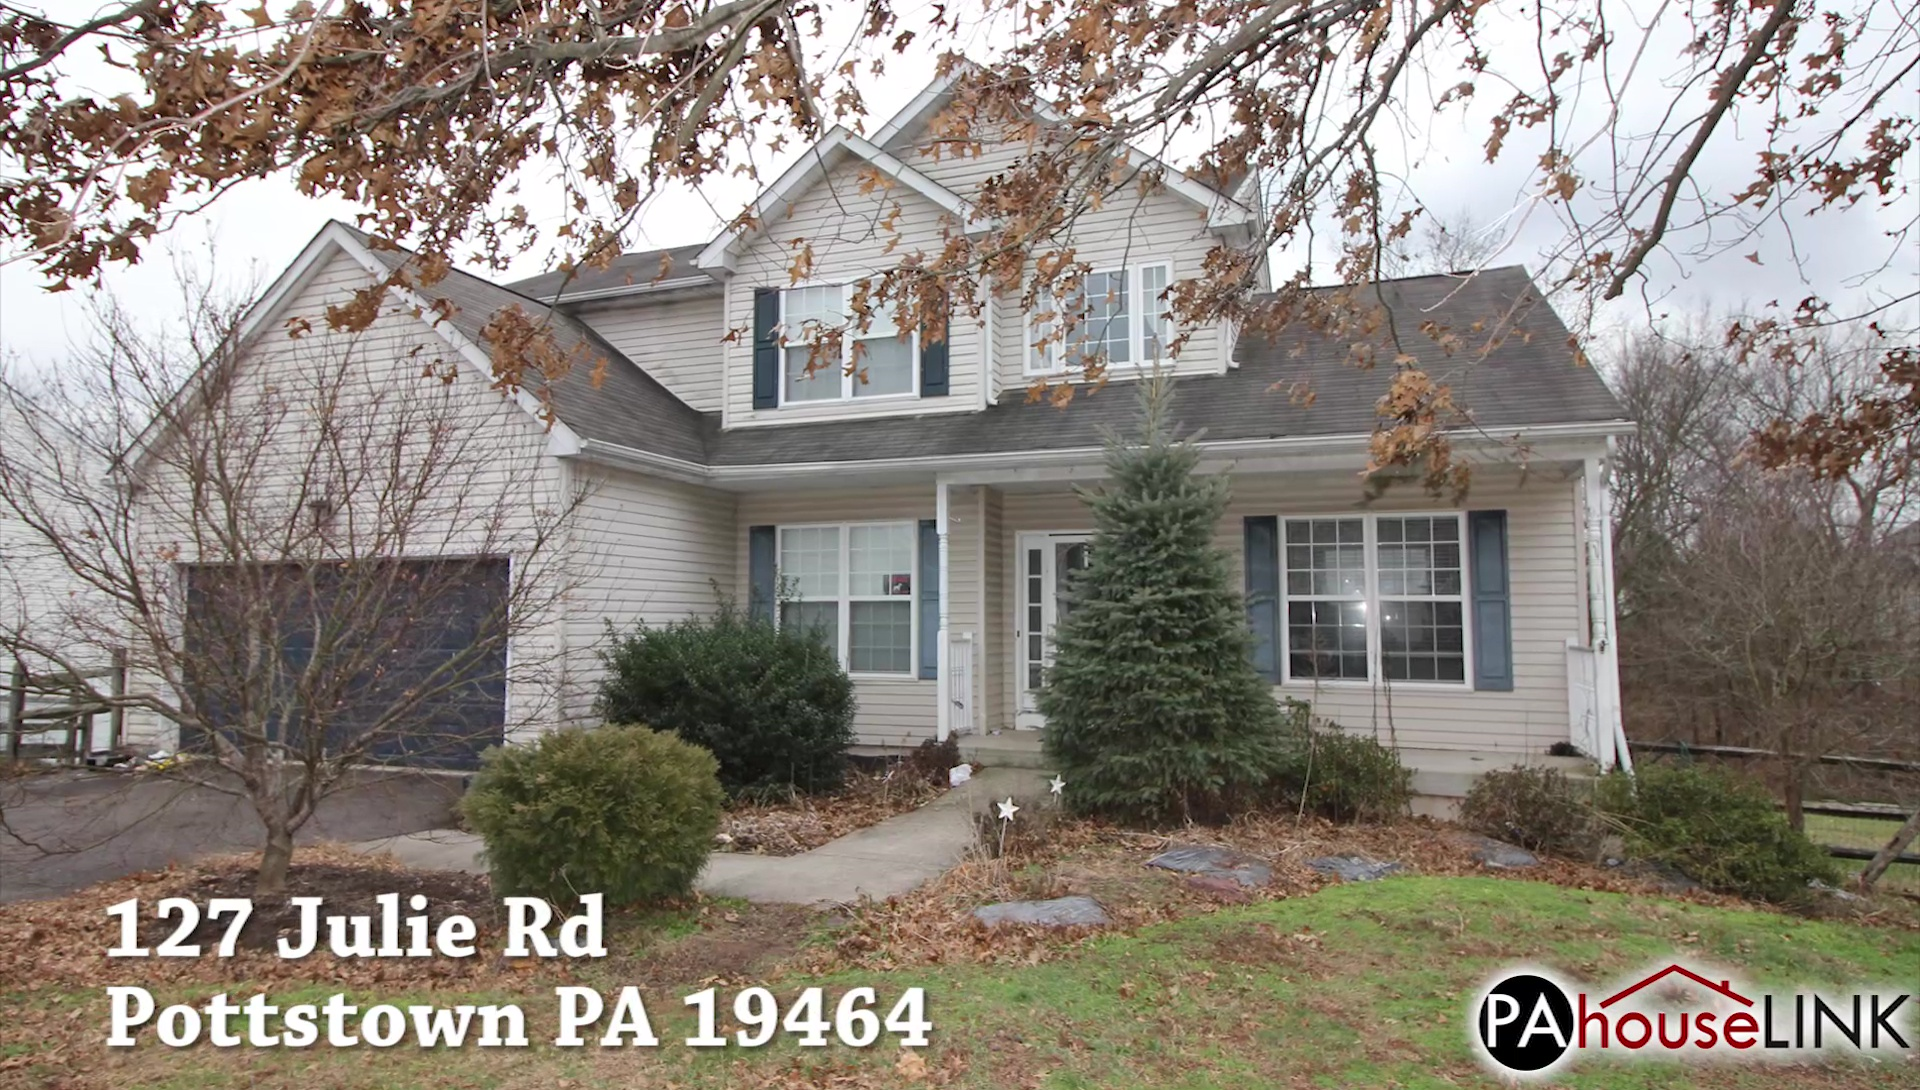 127 Julie Rd Pottstown PA 19464 | Coming Soon Foreclosure Properties Pottstown PA 19464